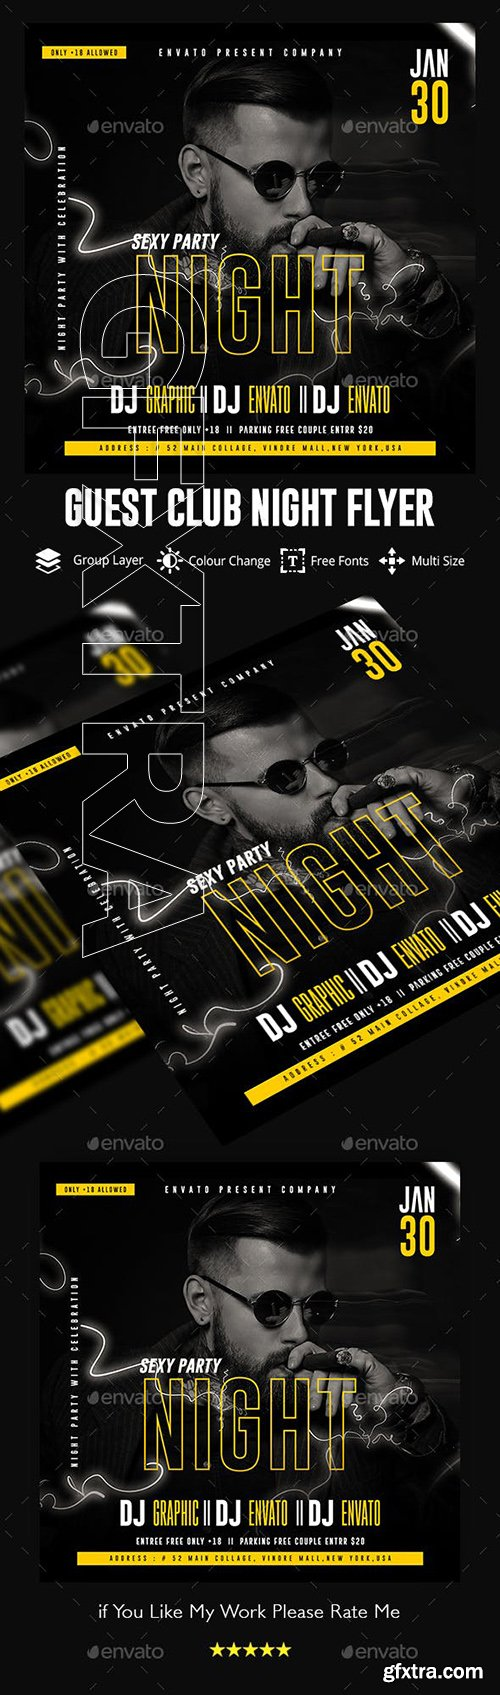 GraphicRiver - Guest Dj Night Flyer Template 23126639